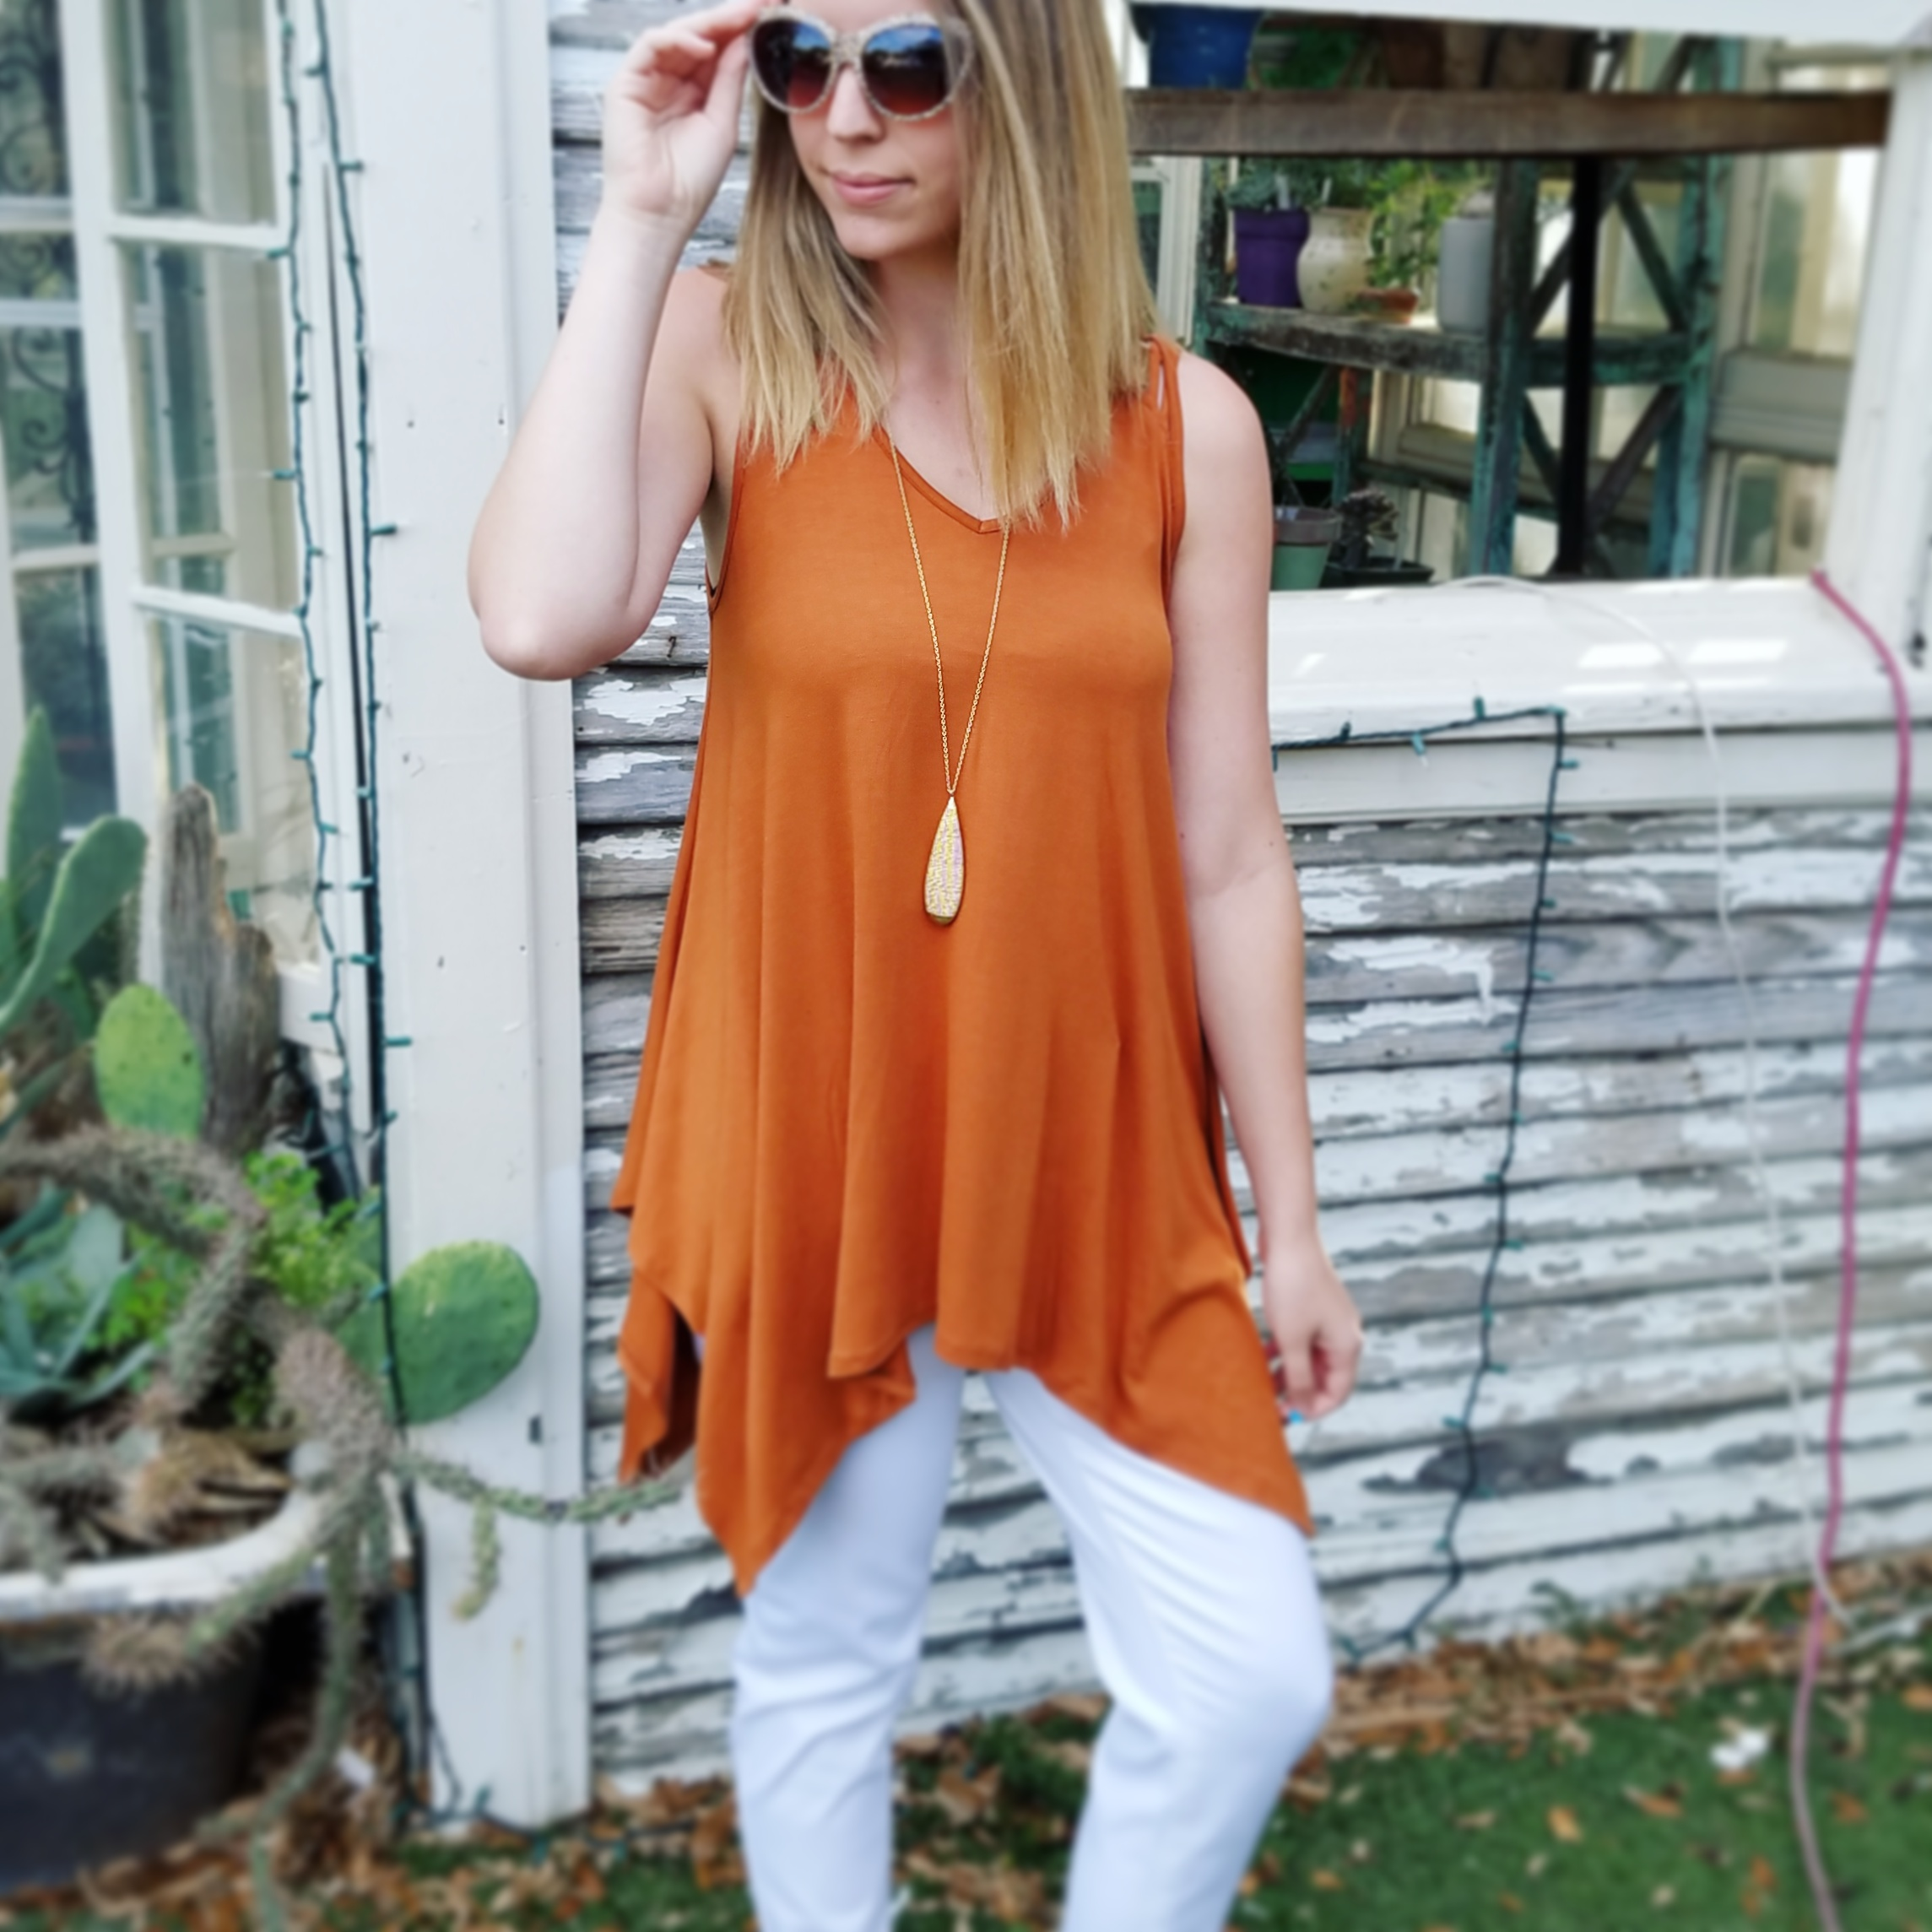 texas longhorn gameday outfit